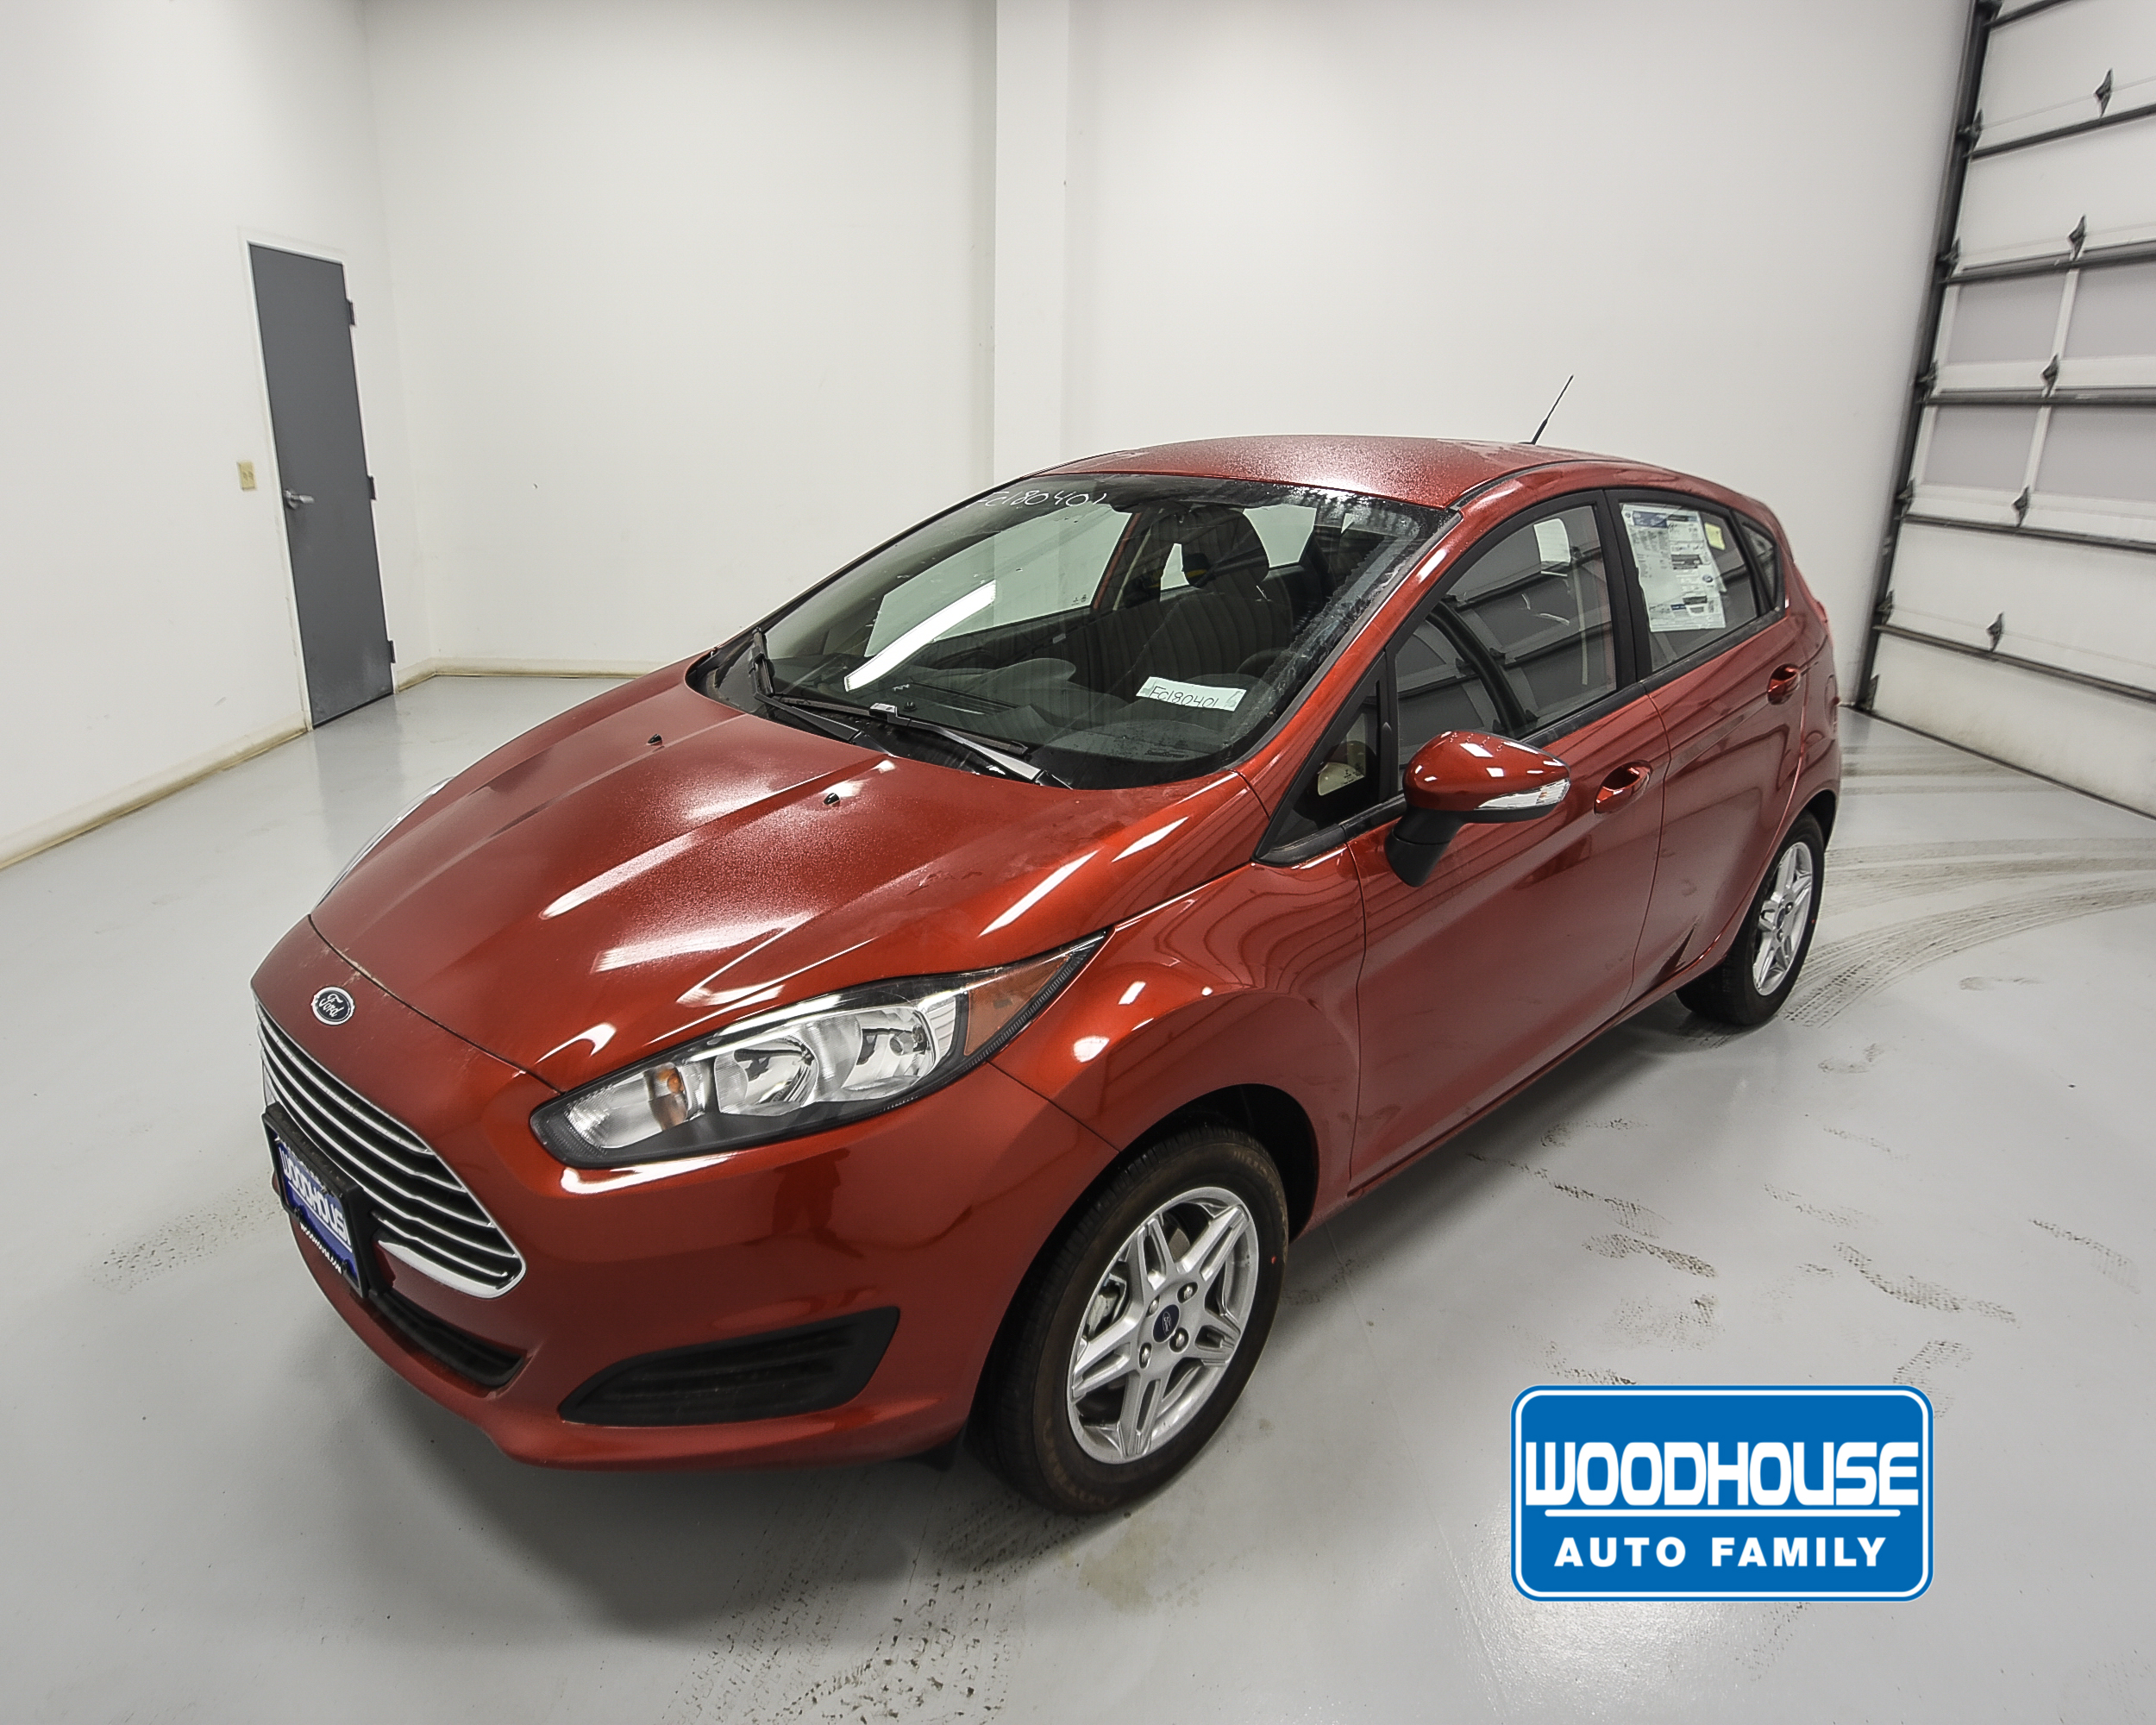 Ford Fiesta For Sale Woodhouse Auto